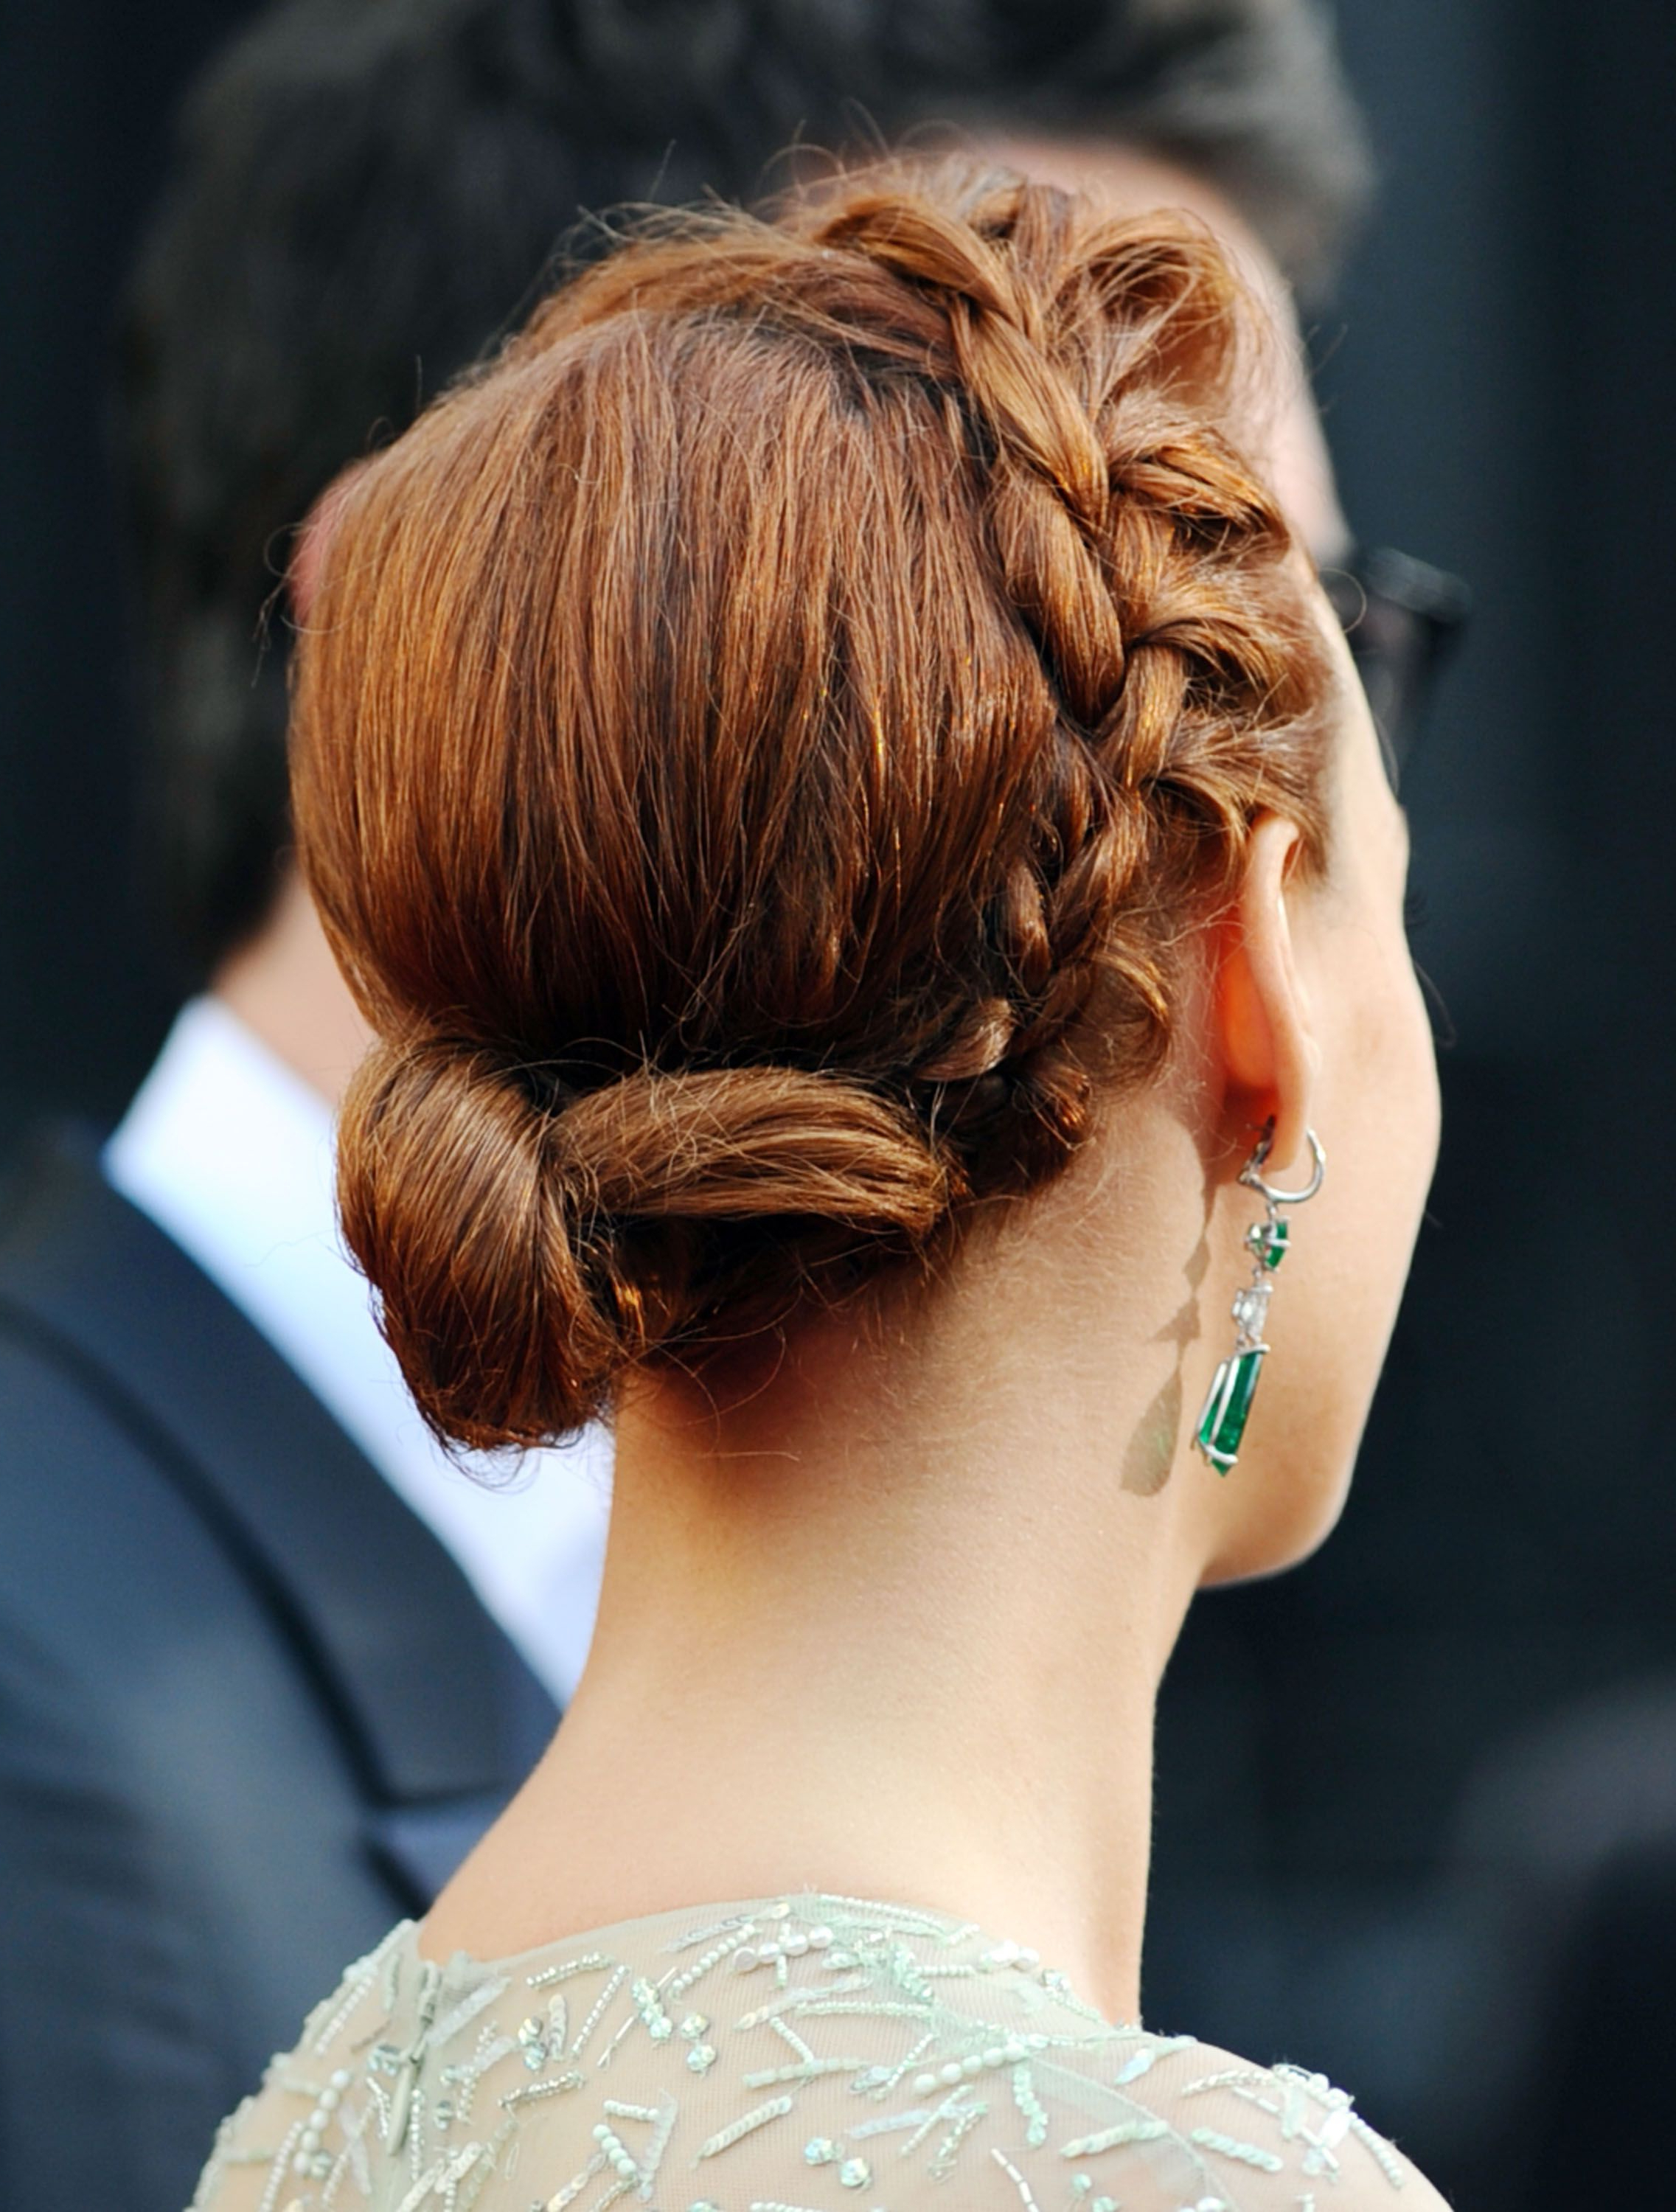 Recent Chunky French Braid Chignon Hairstyles In 60 Easy Braided Hairstyles – Cool Braid How To's & Ideas (View 15 of 20)